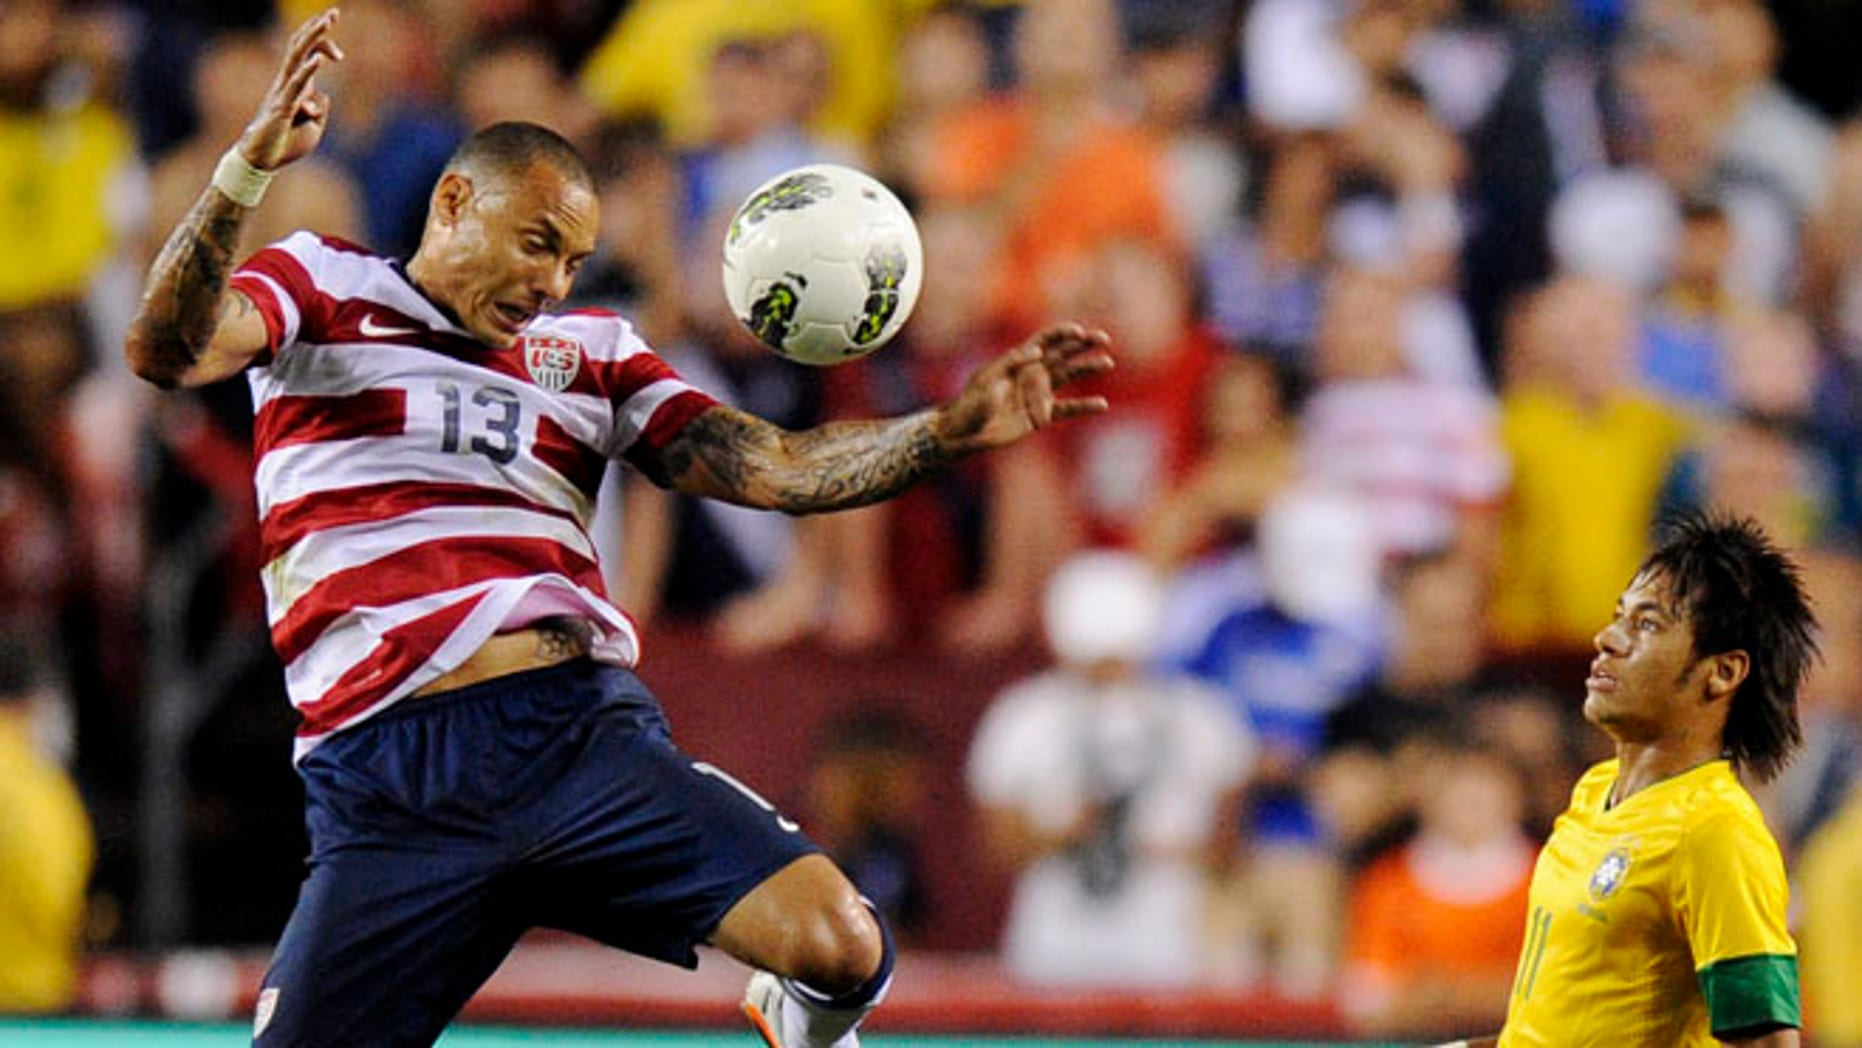 United States' Jermaine Jones (13) goes for the ball as Brazil's Neymar (11) watches, Wednesday, May 30, 2012, in Landover, Md. Brazil won 4-1. (AP Photo/Nick Wass)